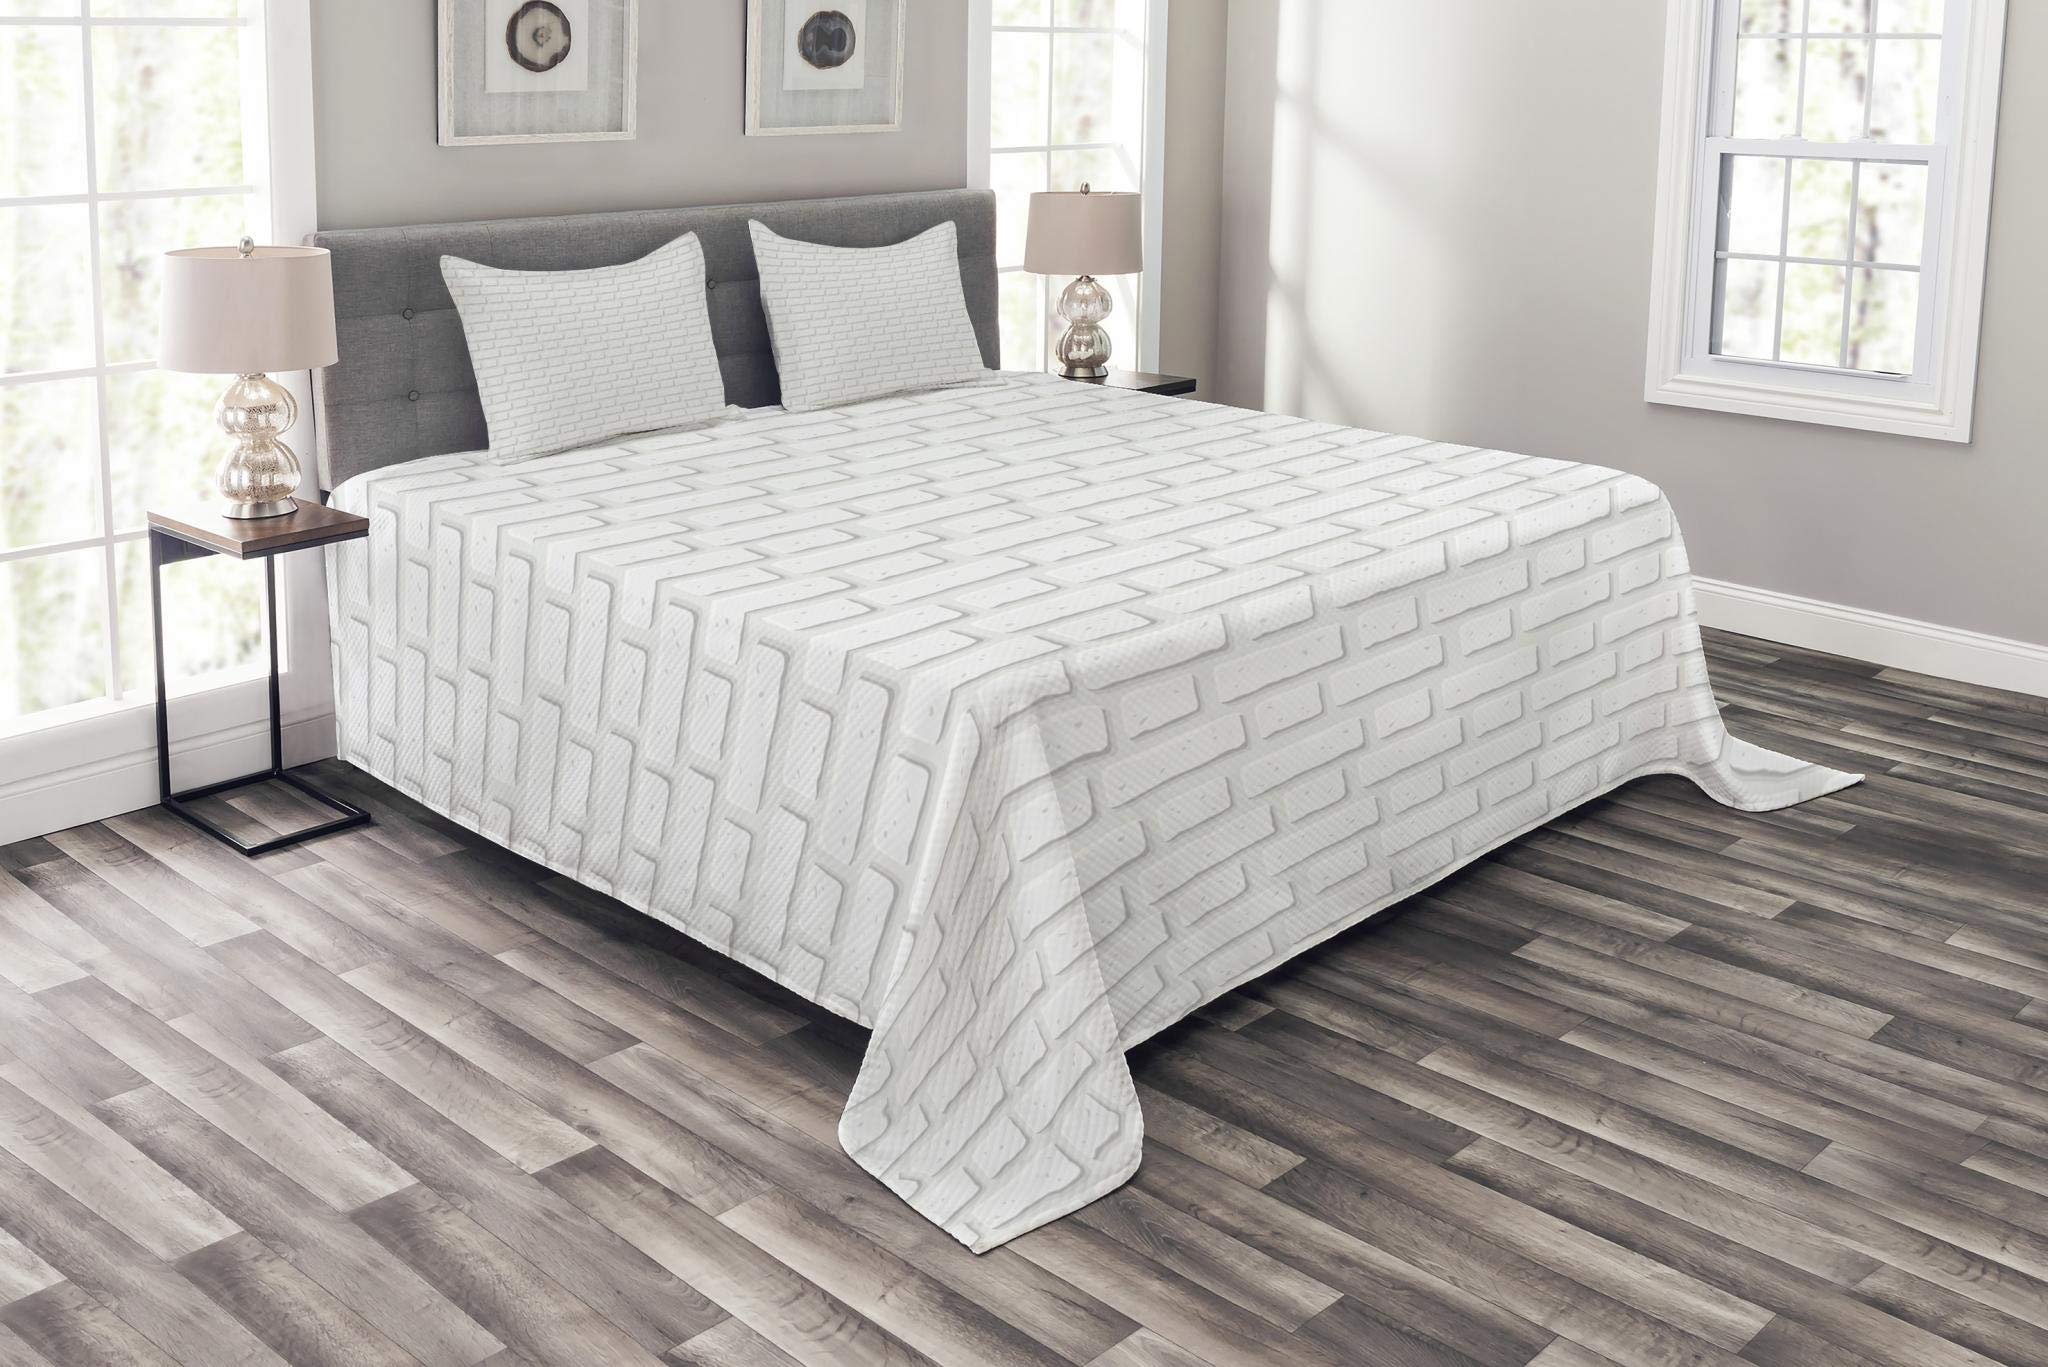 Lunarable White Bedspread Set King Size, Urban City Construction Theme with Cartoon Style Brick Wall Architecture Concept, Decorative Quilted 3 Piece Coverlet Set with 2 Pillow Shams, White Pale Grey